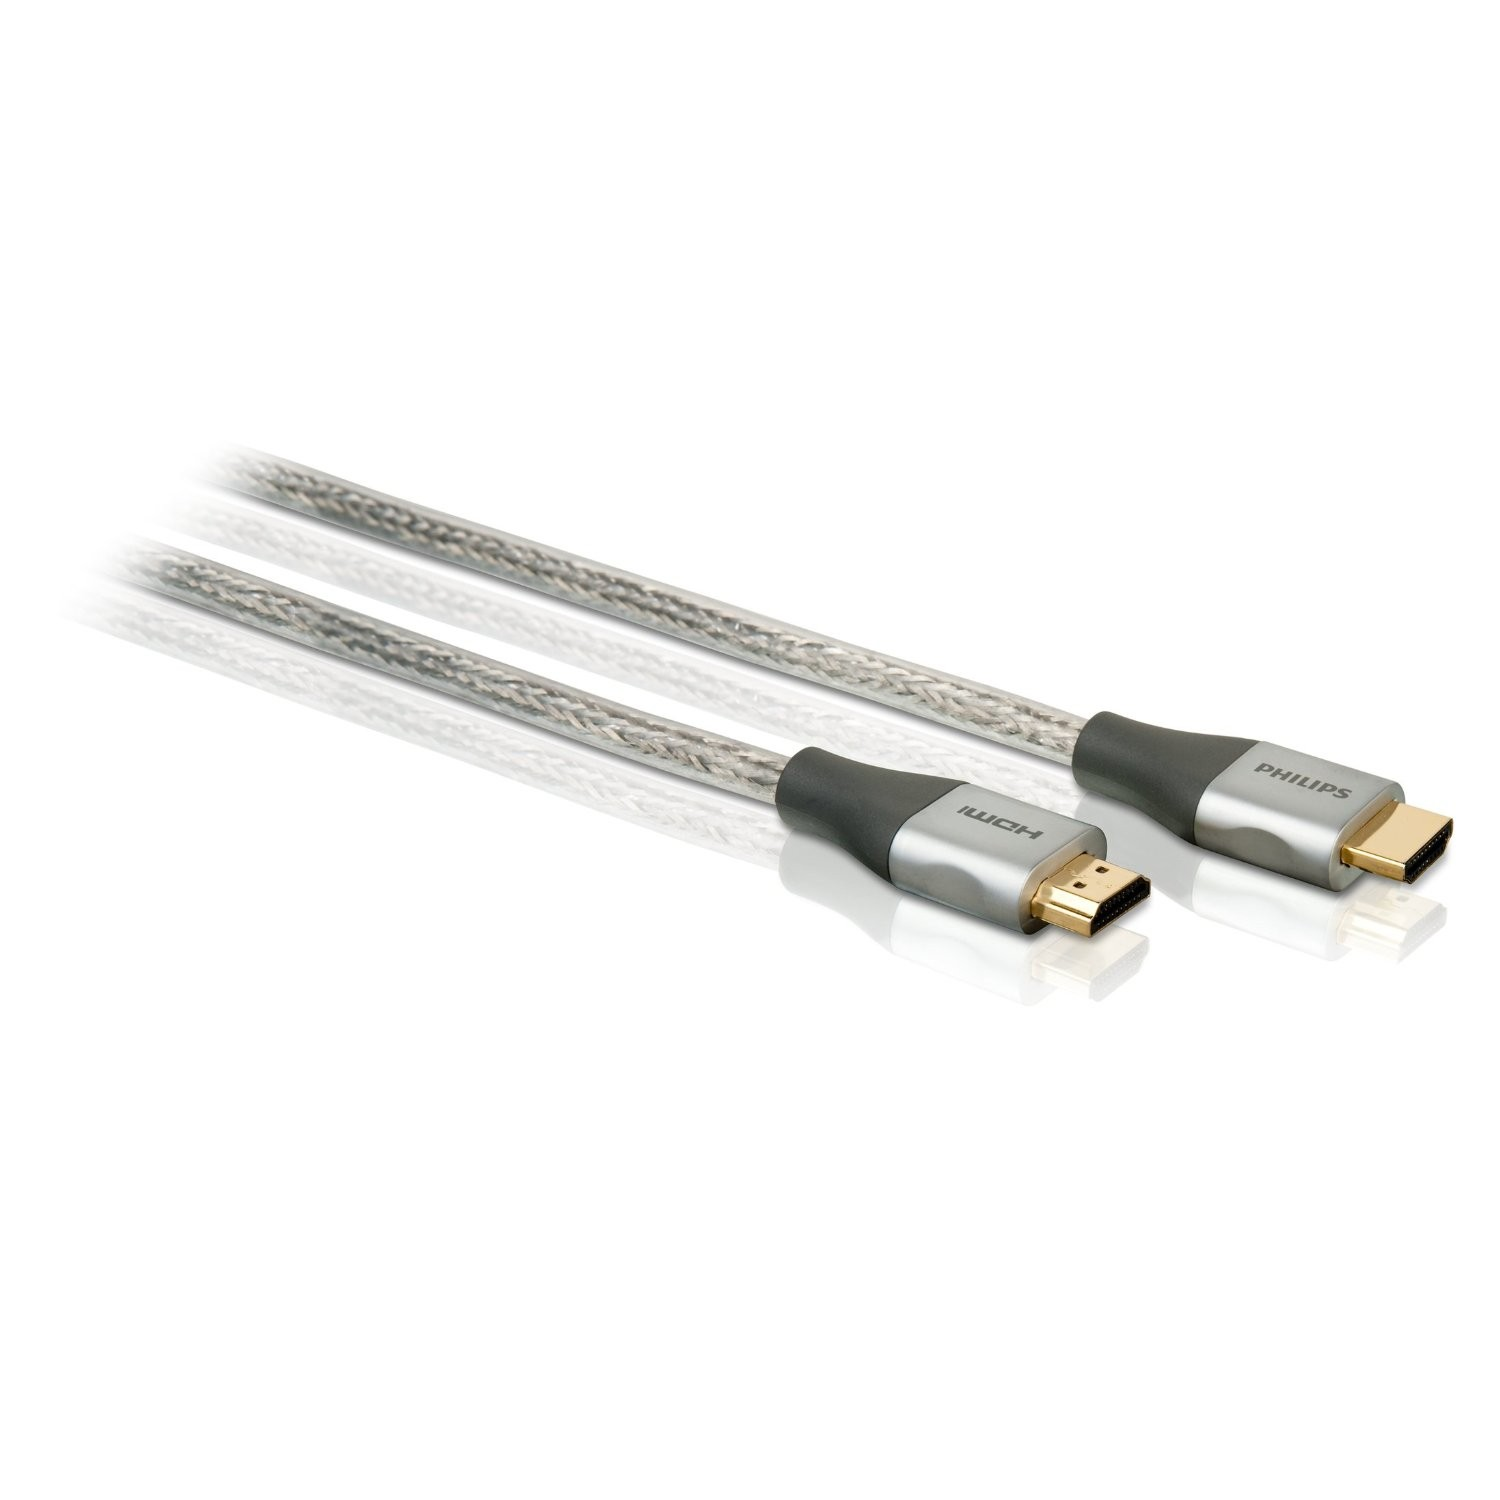 Philips High Speed HDMI Cable - 6ft